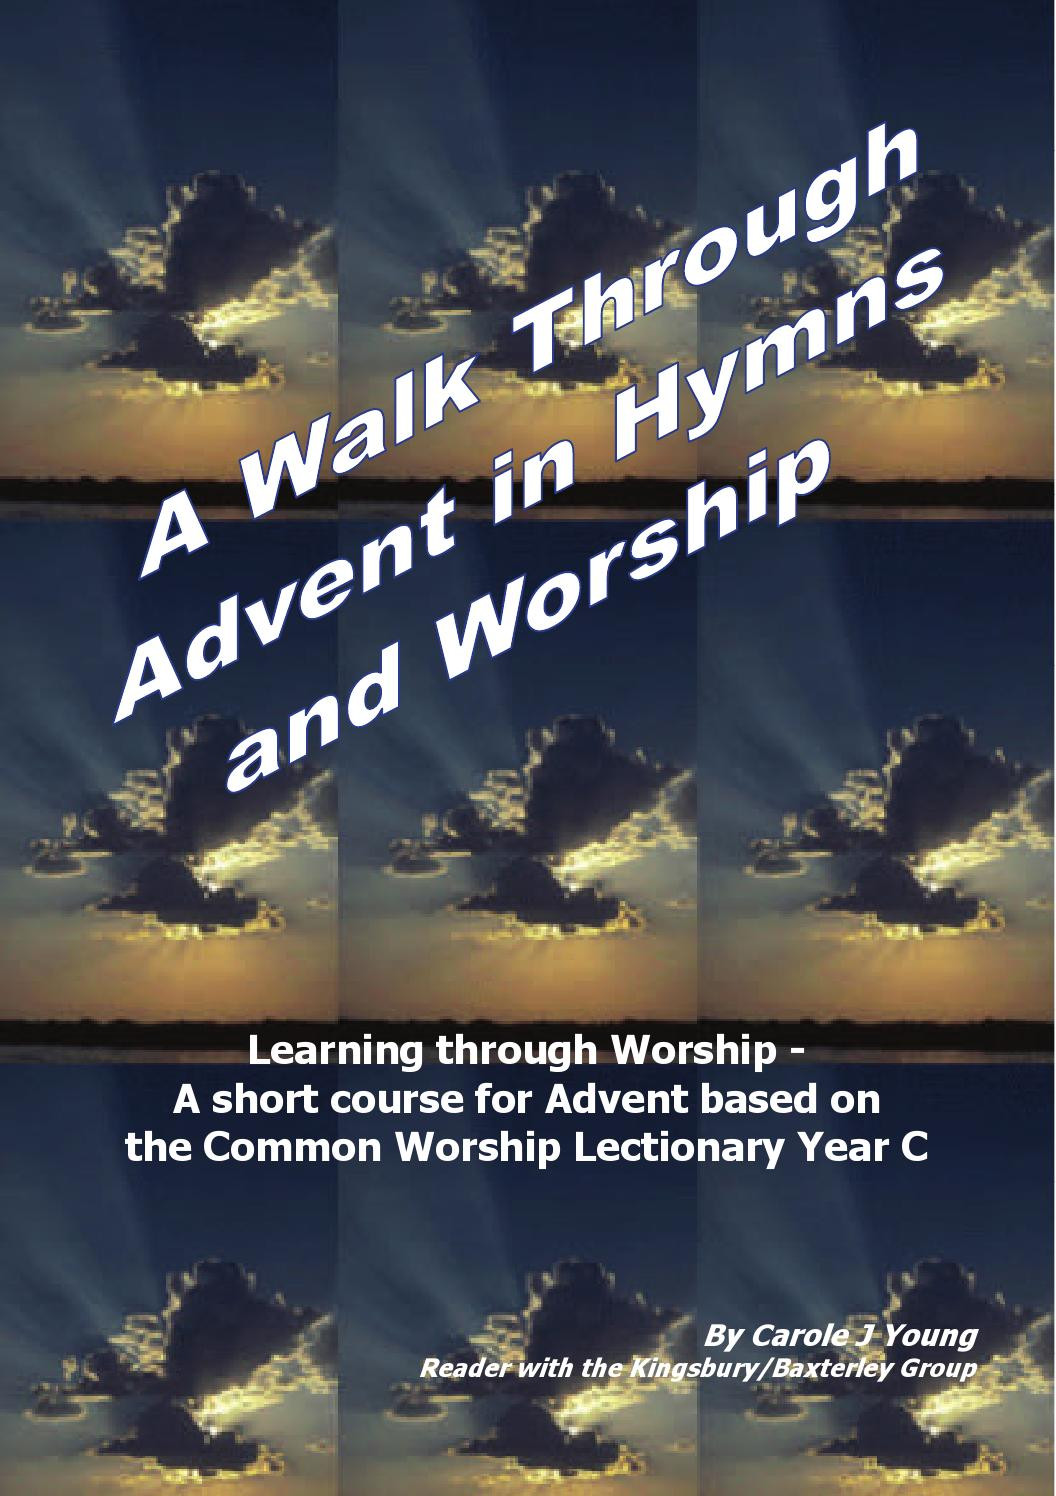 a walk through advent in hymns worship by carole young. Black Bedroom Furniture Sets. Home Design Ideas